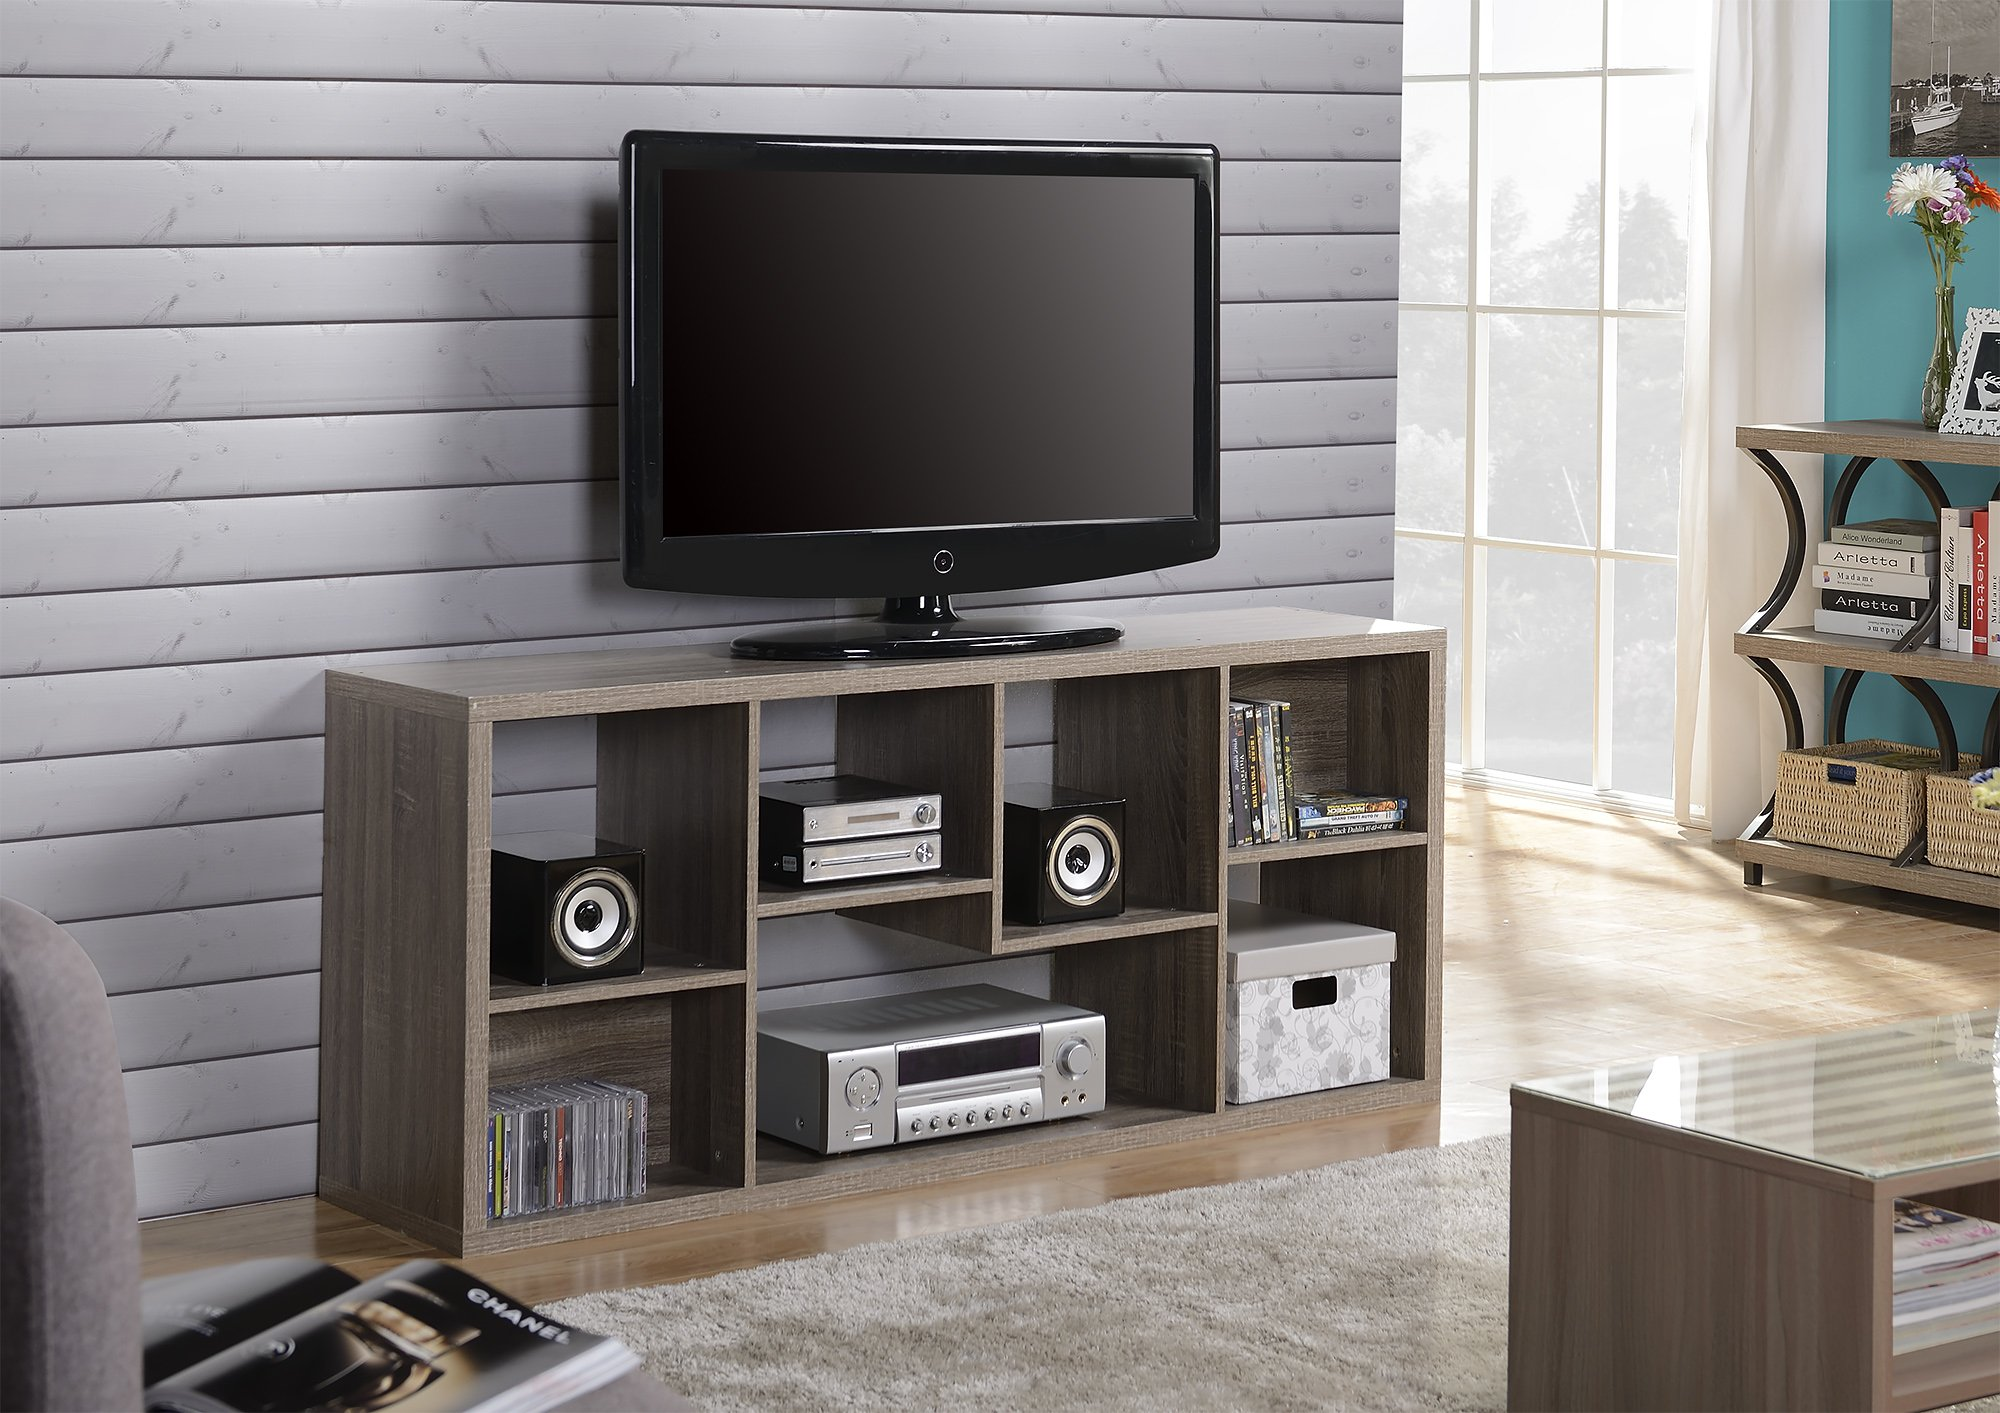 Homestar ZH1415771R 7 Compartment Shelving Console in Reclaimed Wood by Homestar